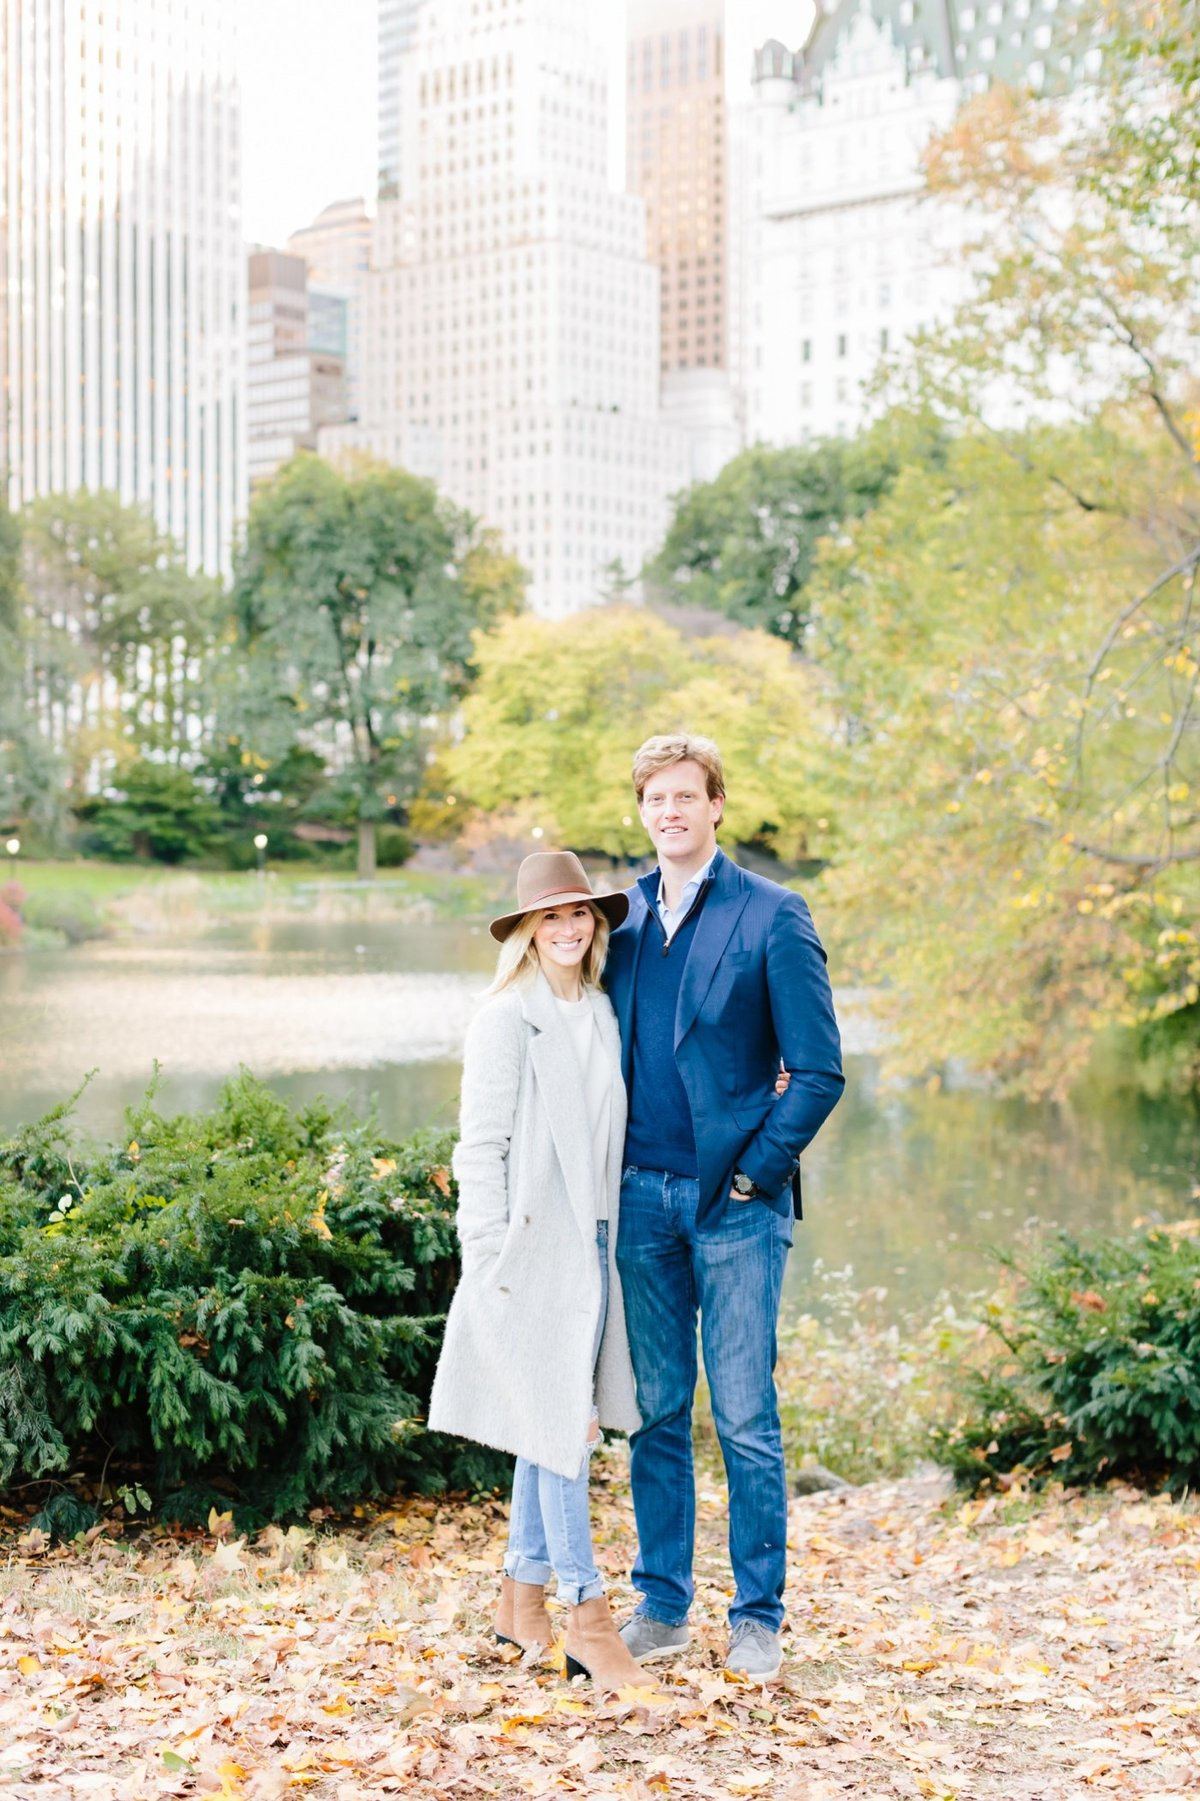 Georgia South Carolina Destination Wedding Photographer_0127